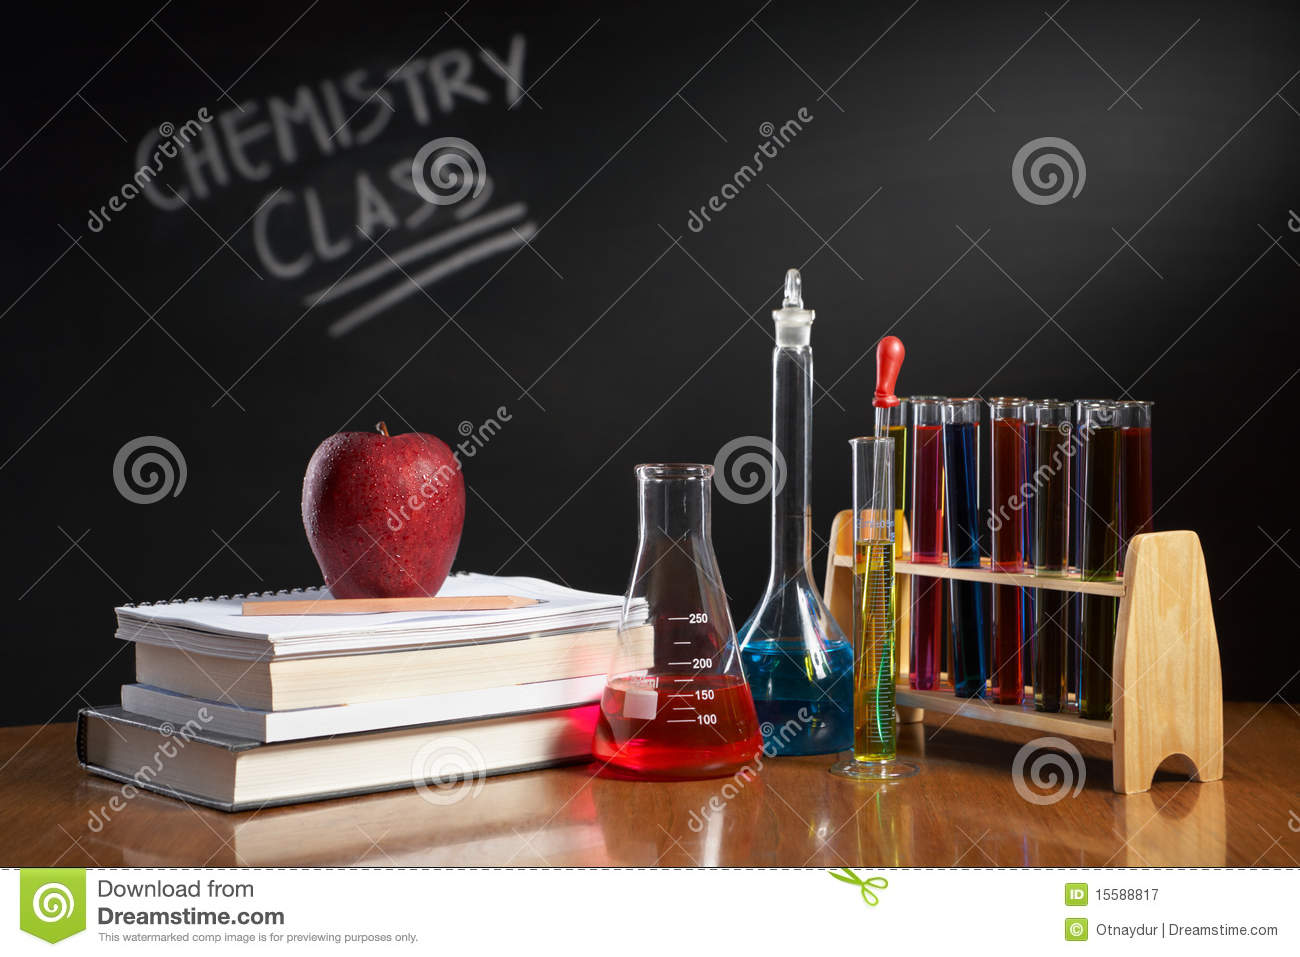 ... class concept with red apple on pile of books and chemical solution